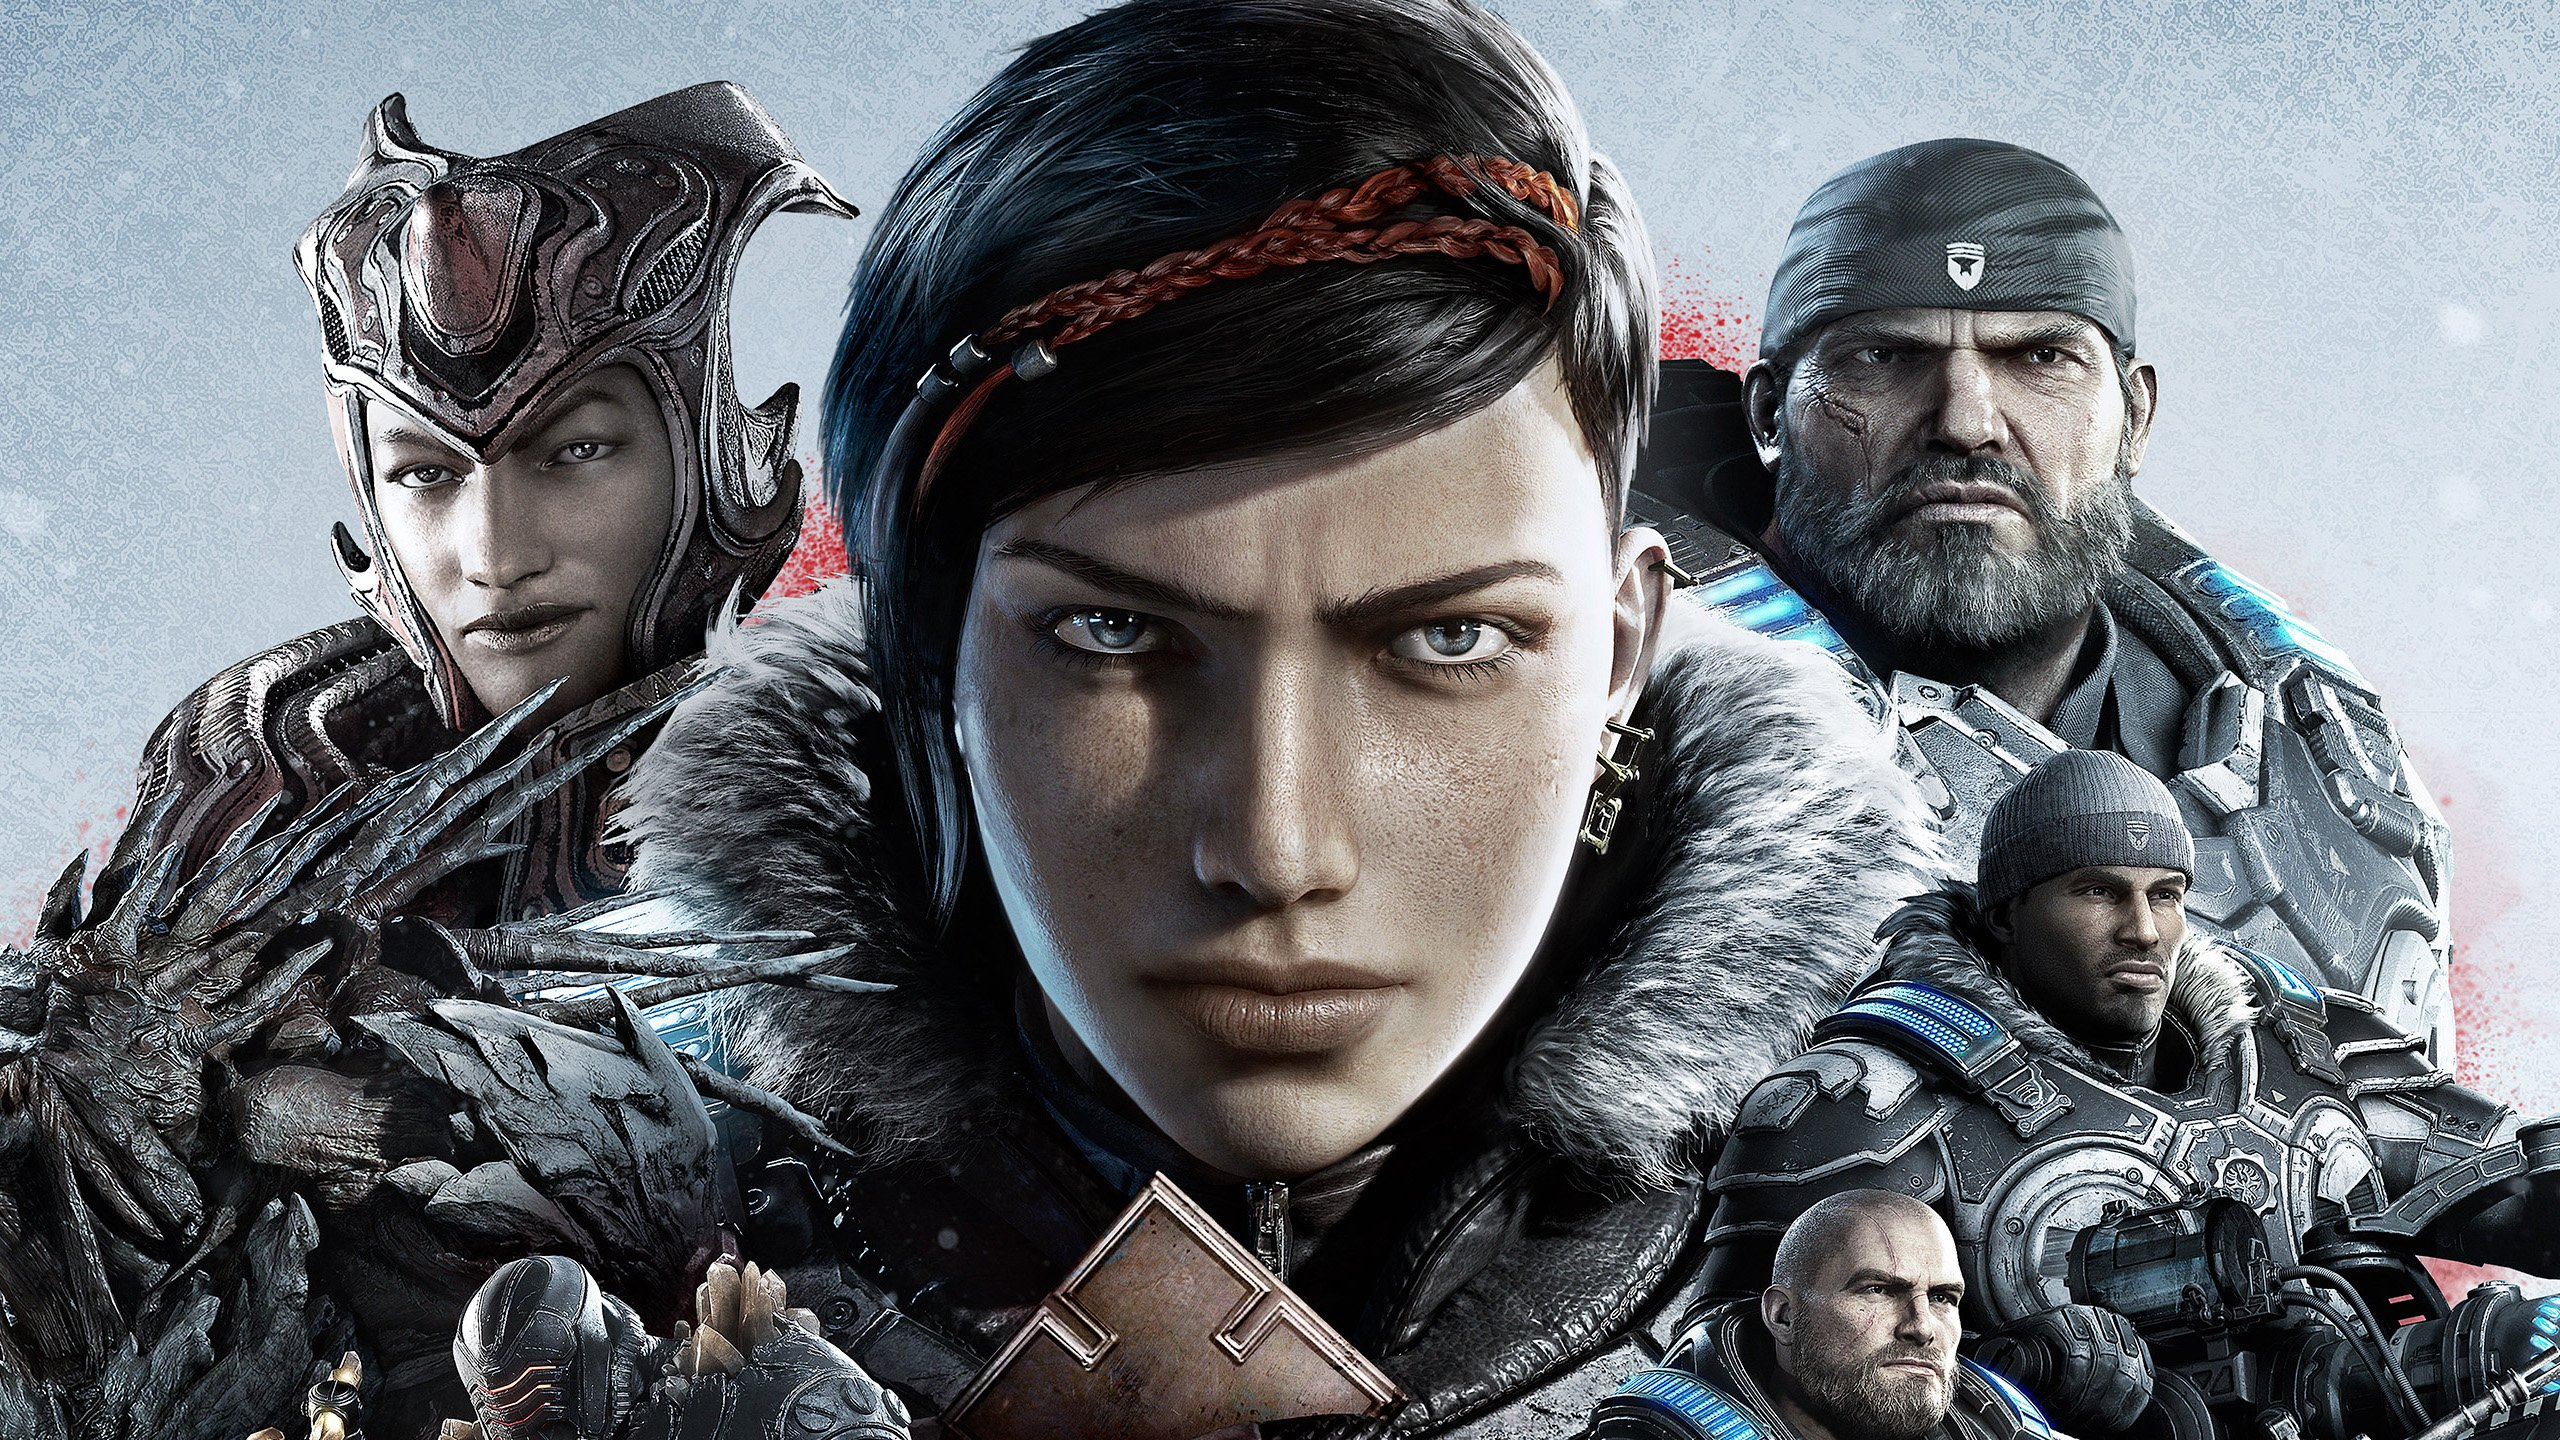 What Song Is Playing In The Gears 5 E3 2019 Escape Trailer